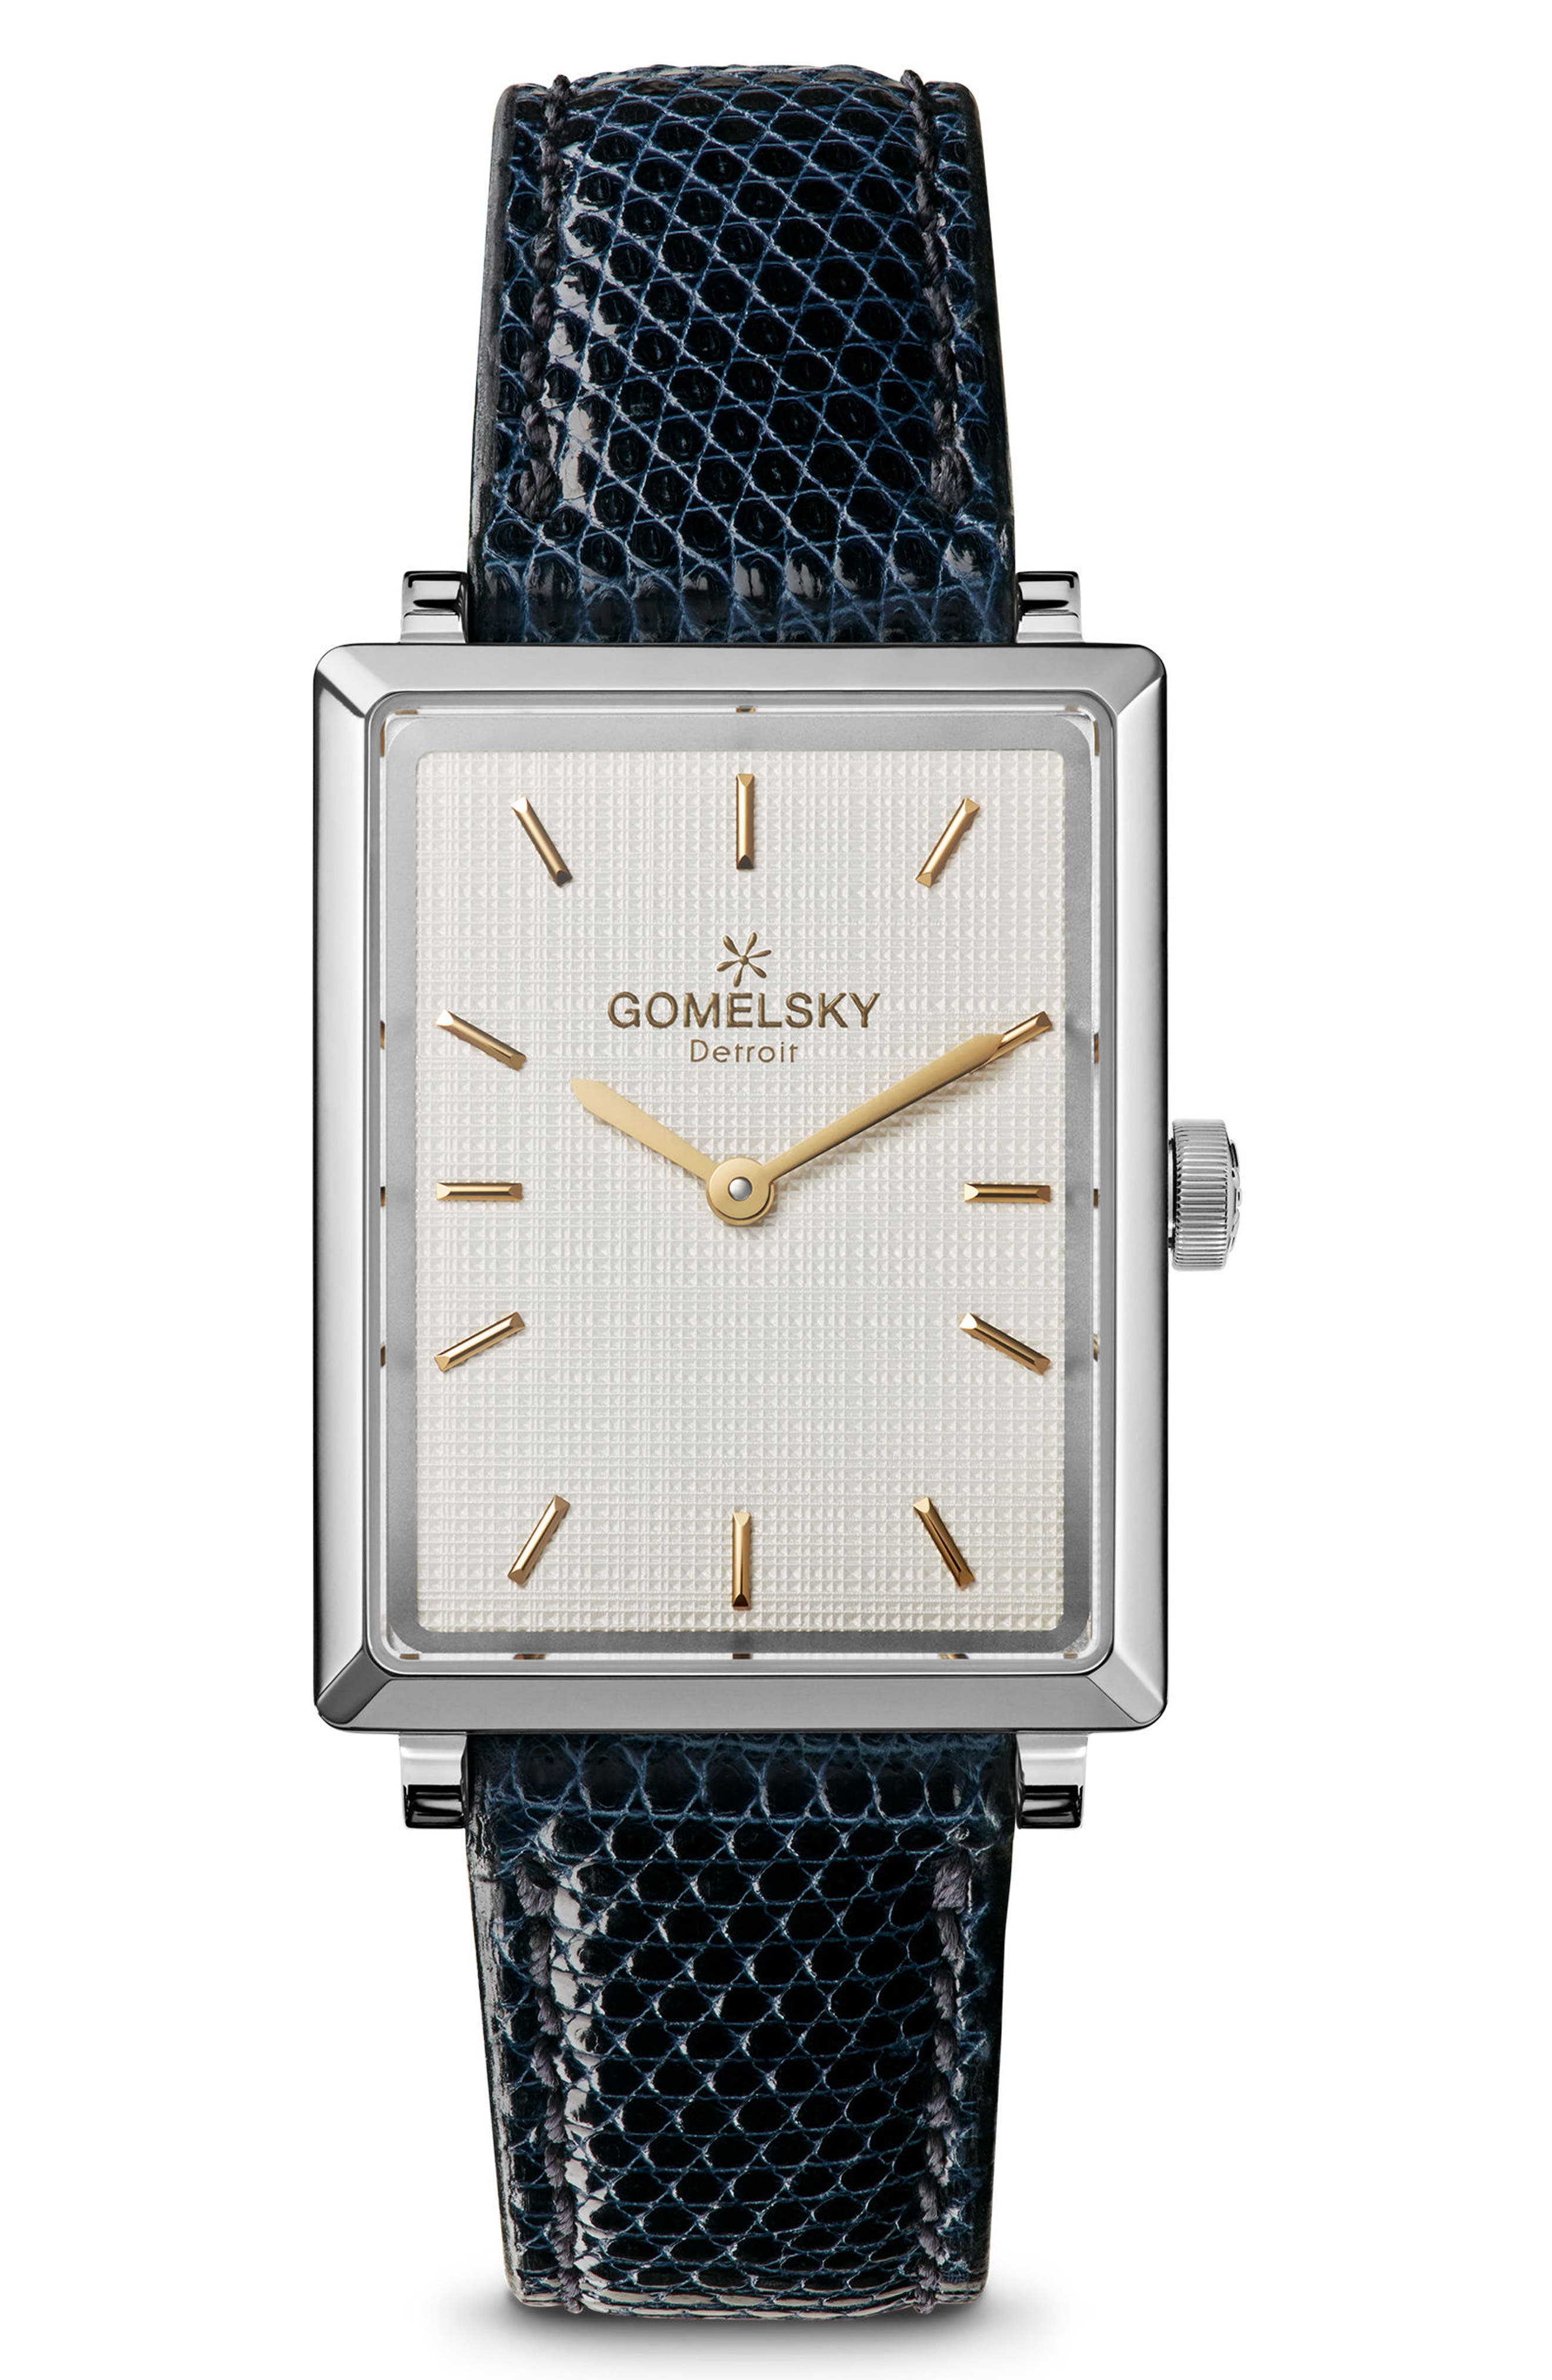 Main Image - Gomelsky The Shirley Fromer Leather Strap Watch, 32mm x 25mm